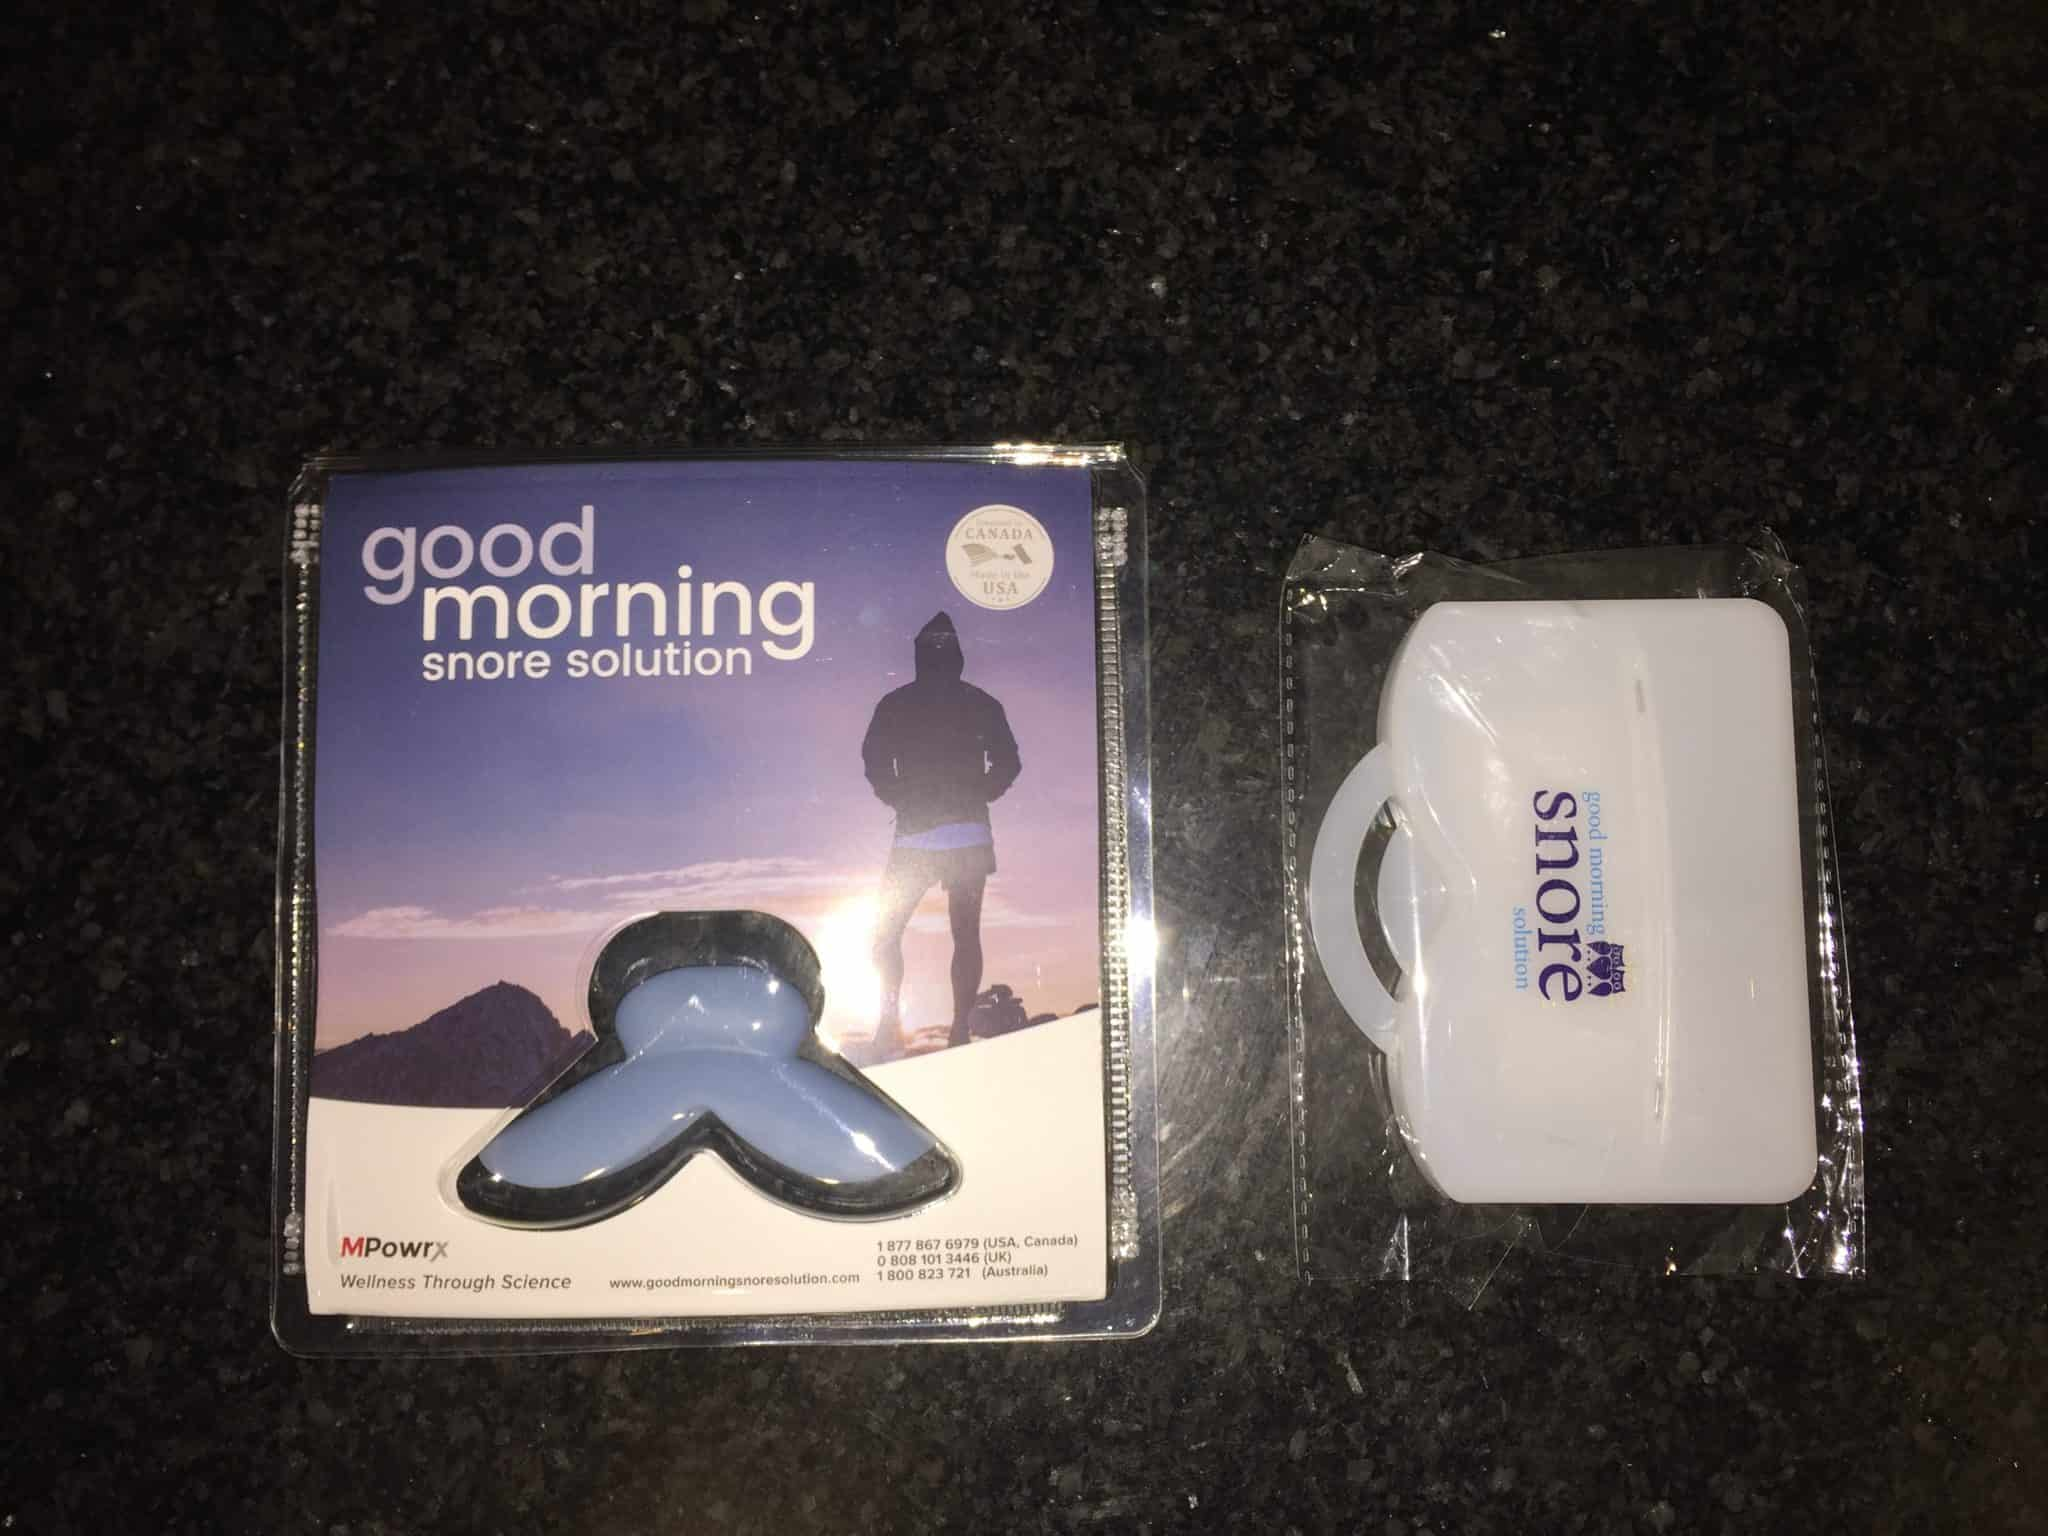 Such a brilliant invention! I wear it every night. My dentist was impressed with the simplicity of the Good Morning Snore Solution and confirmed that it is perfectly safe to wear all night. I gave one to my son for his TMJ. The trick, for me, is to relax my tongue and my jaw so the device has room to rest comfortably.4/4(9).